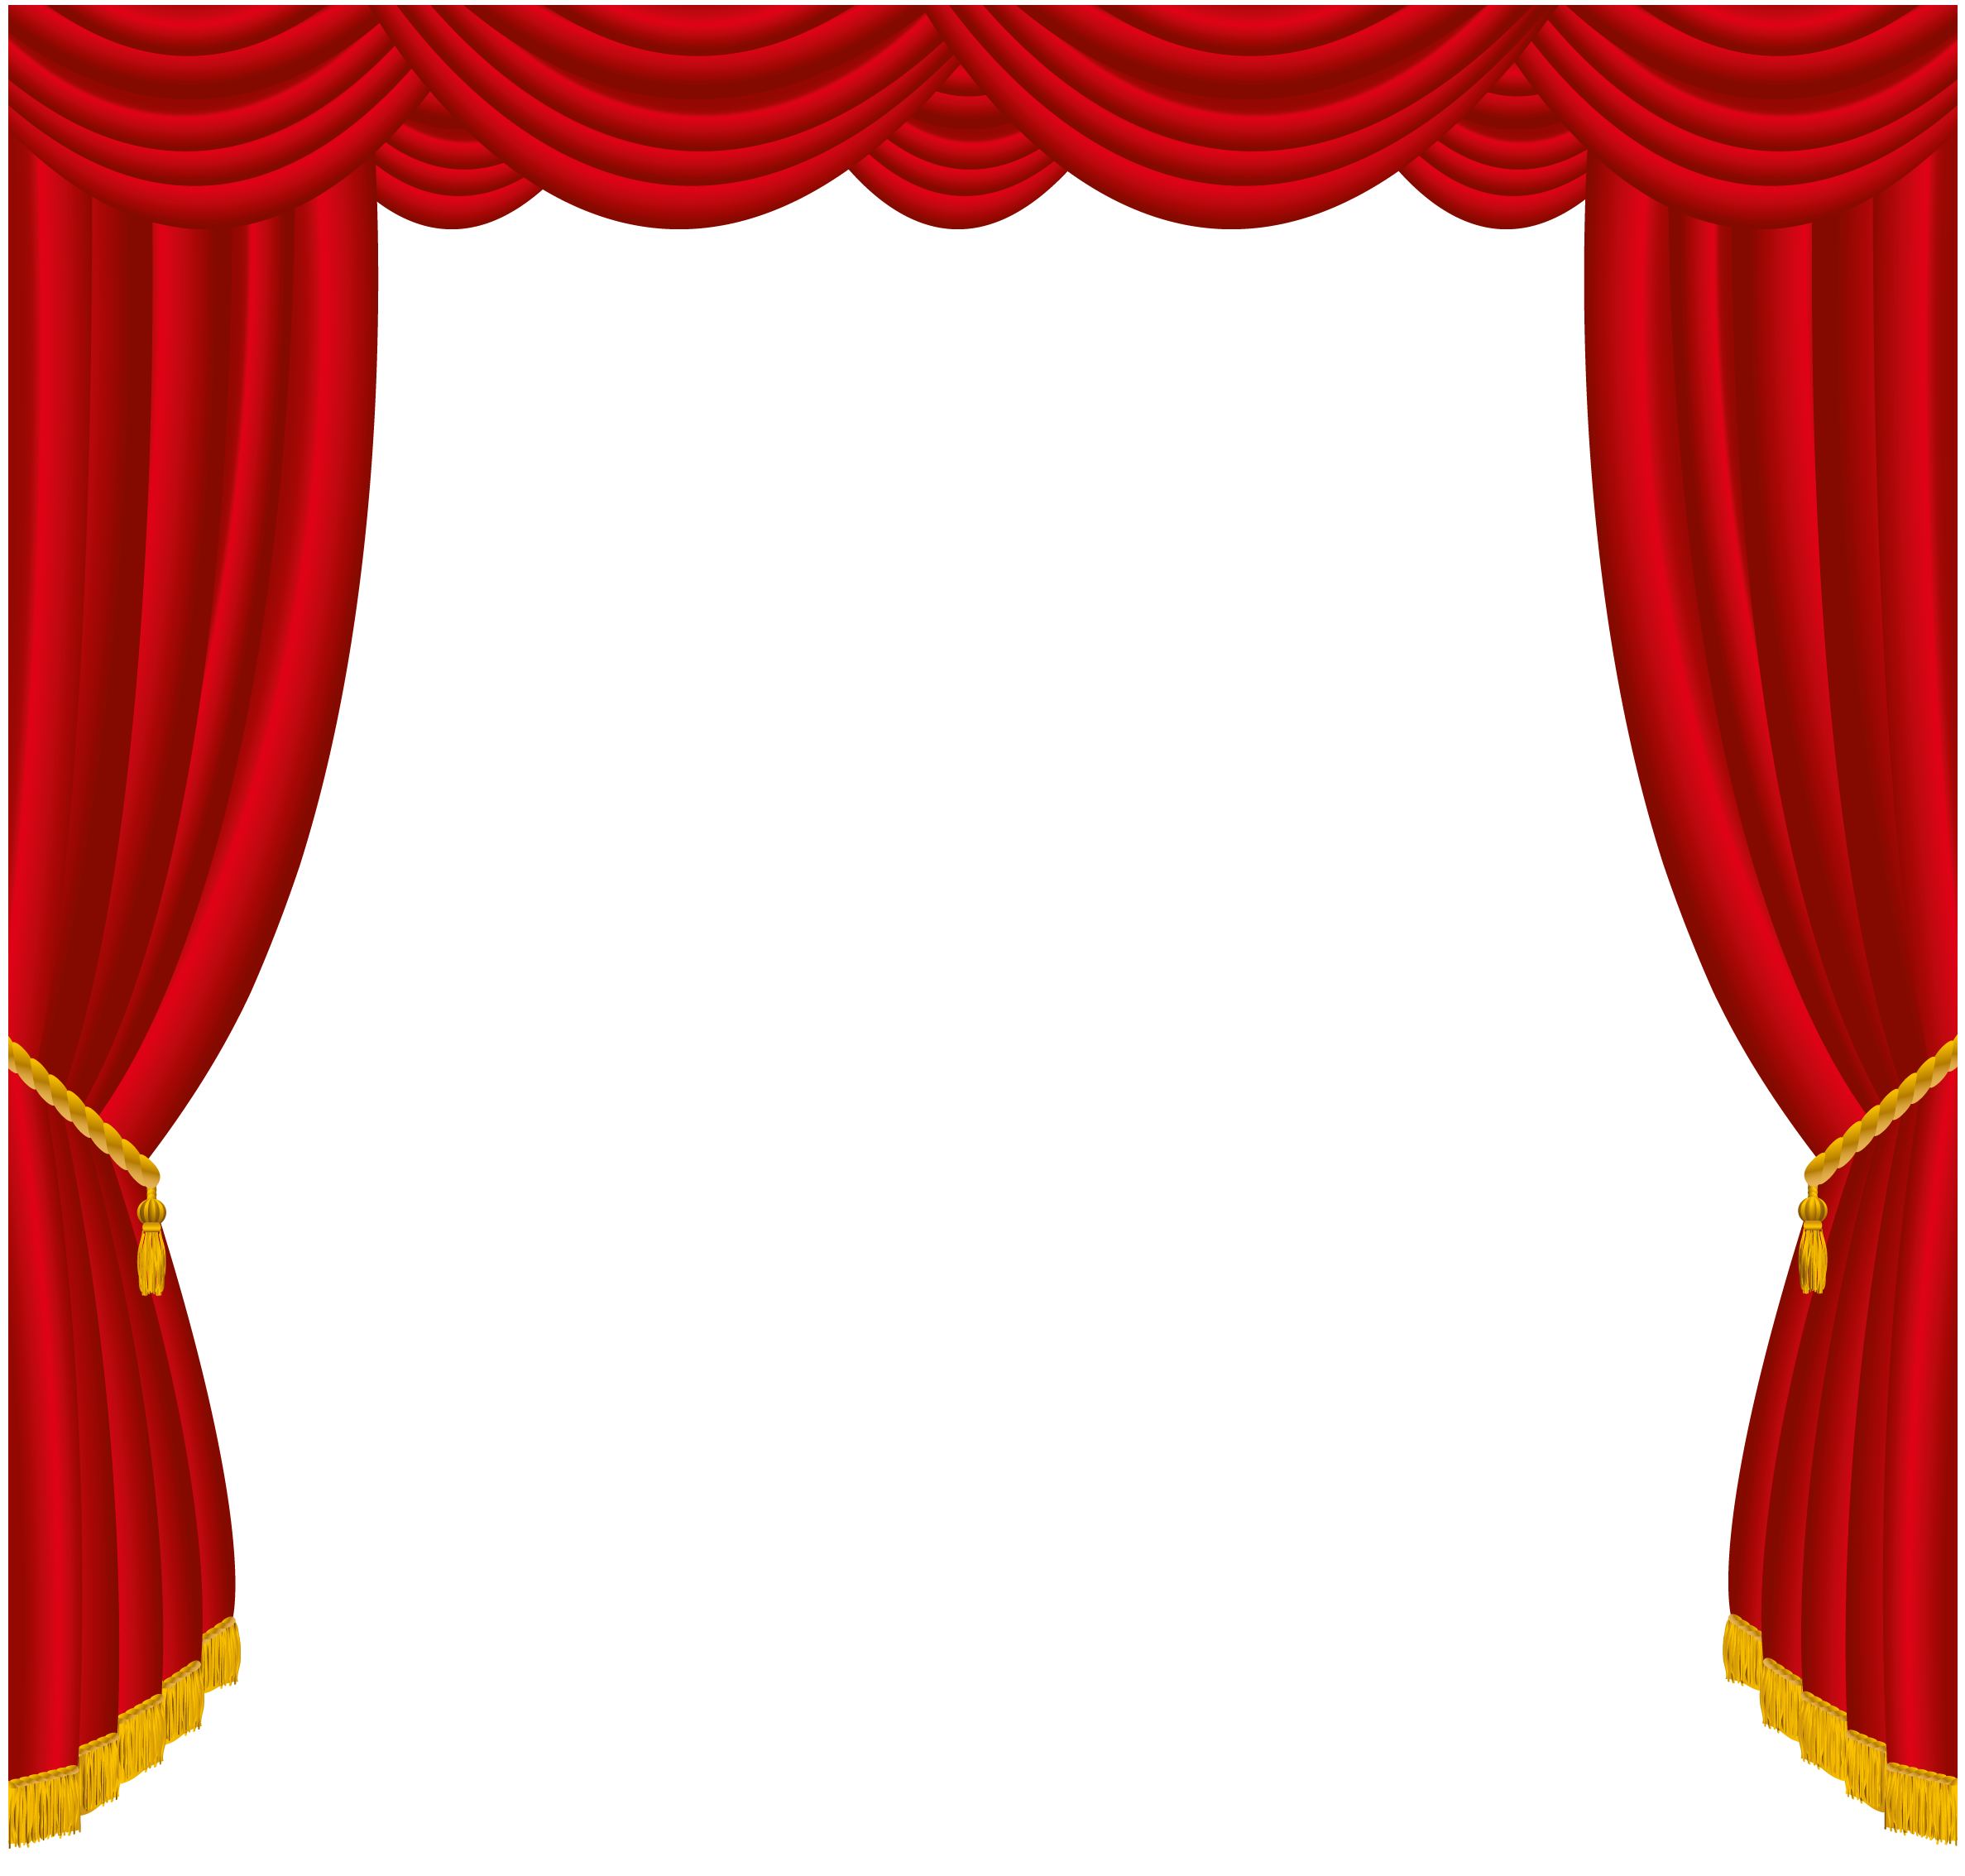 clipart stock Transparent Red Curtains Decor PNG Clipart